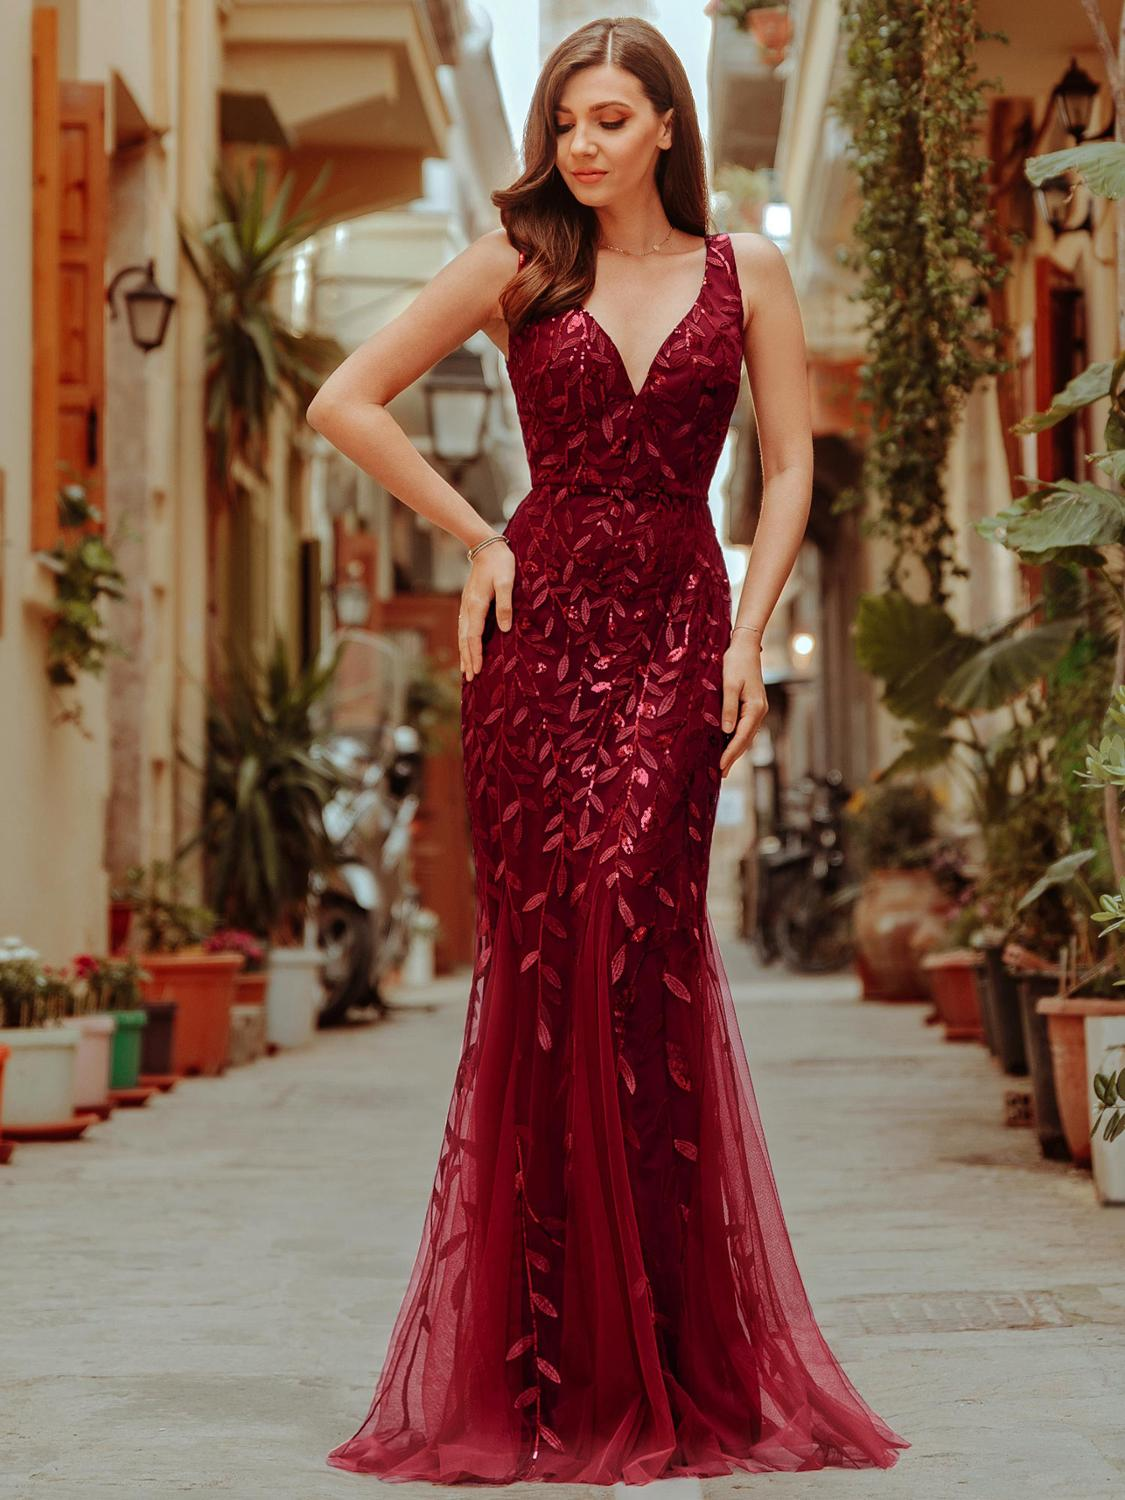 Party-Gowns Evening-Dresses Ever Pretty Mermaid-Sequined Burgundy Elegant Women V-Neck